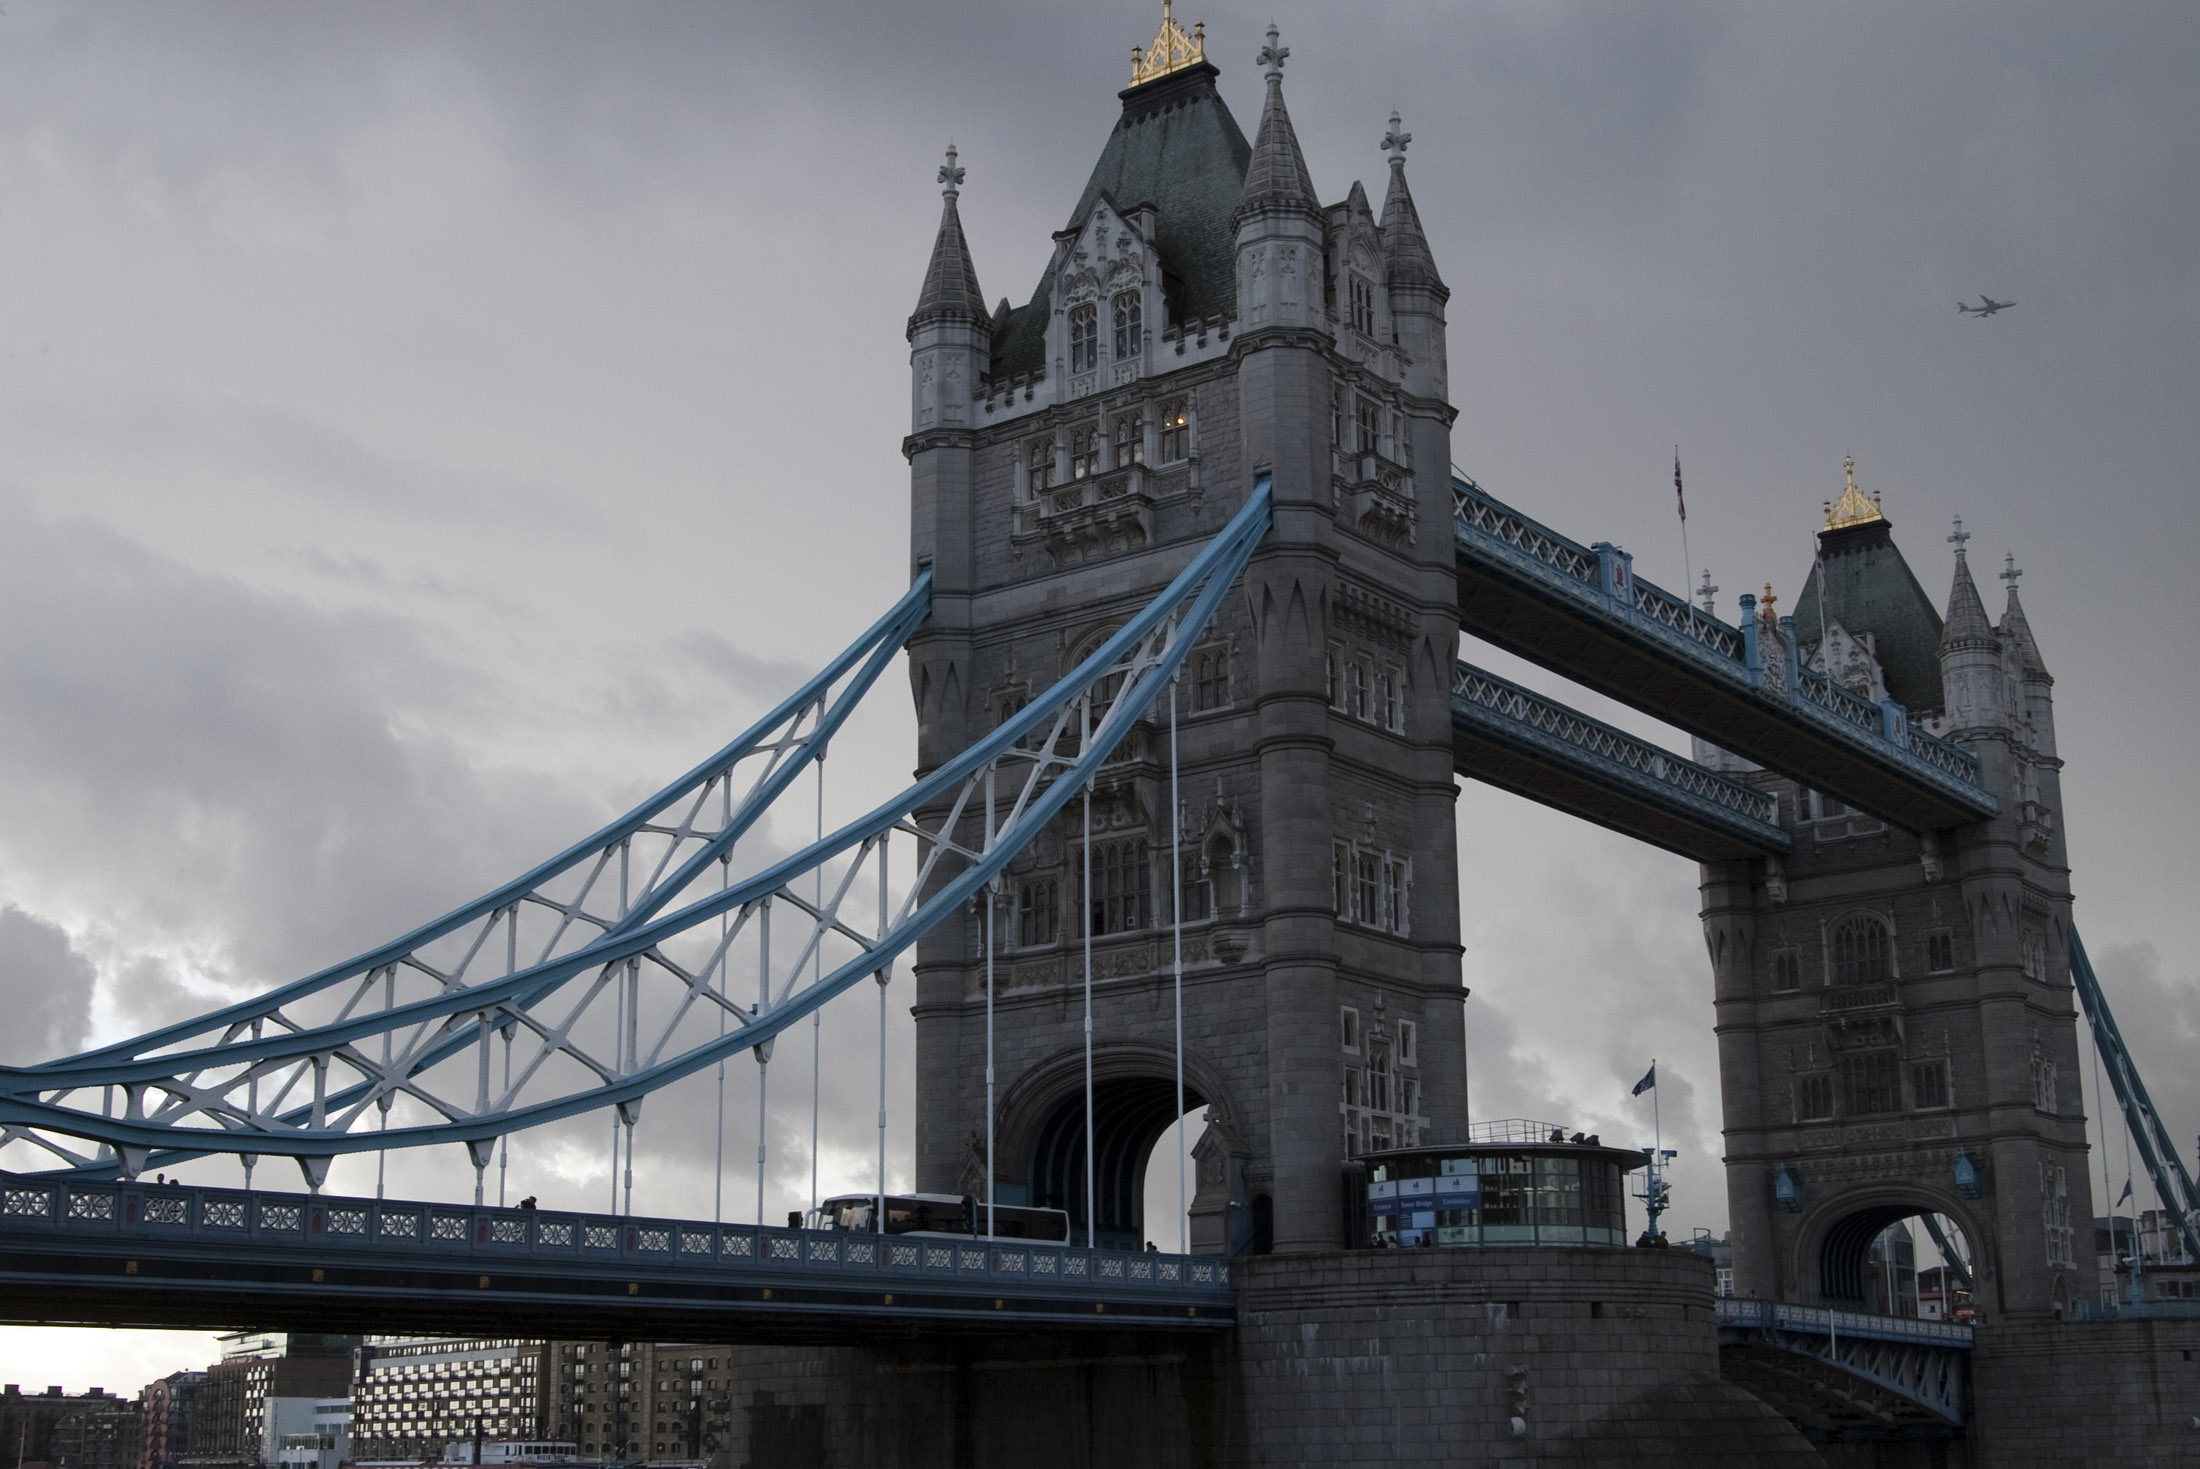 tower bridge crosses the river thames with a suspension and lifting bascule structure